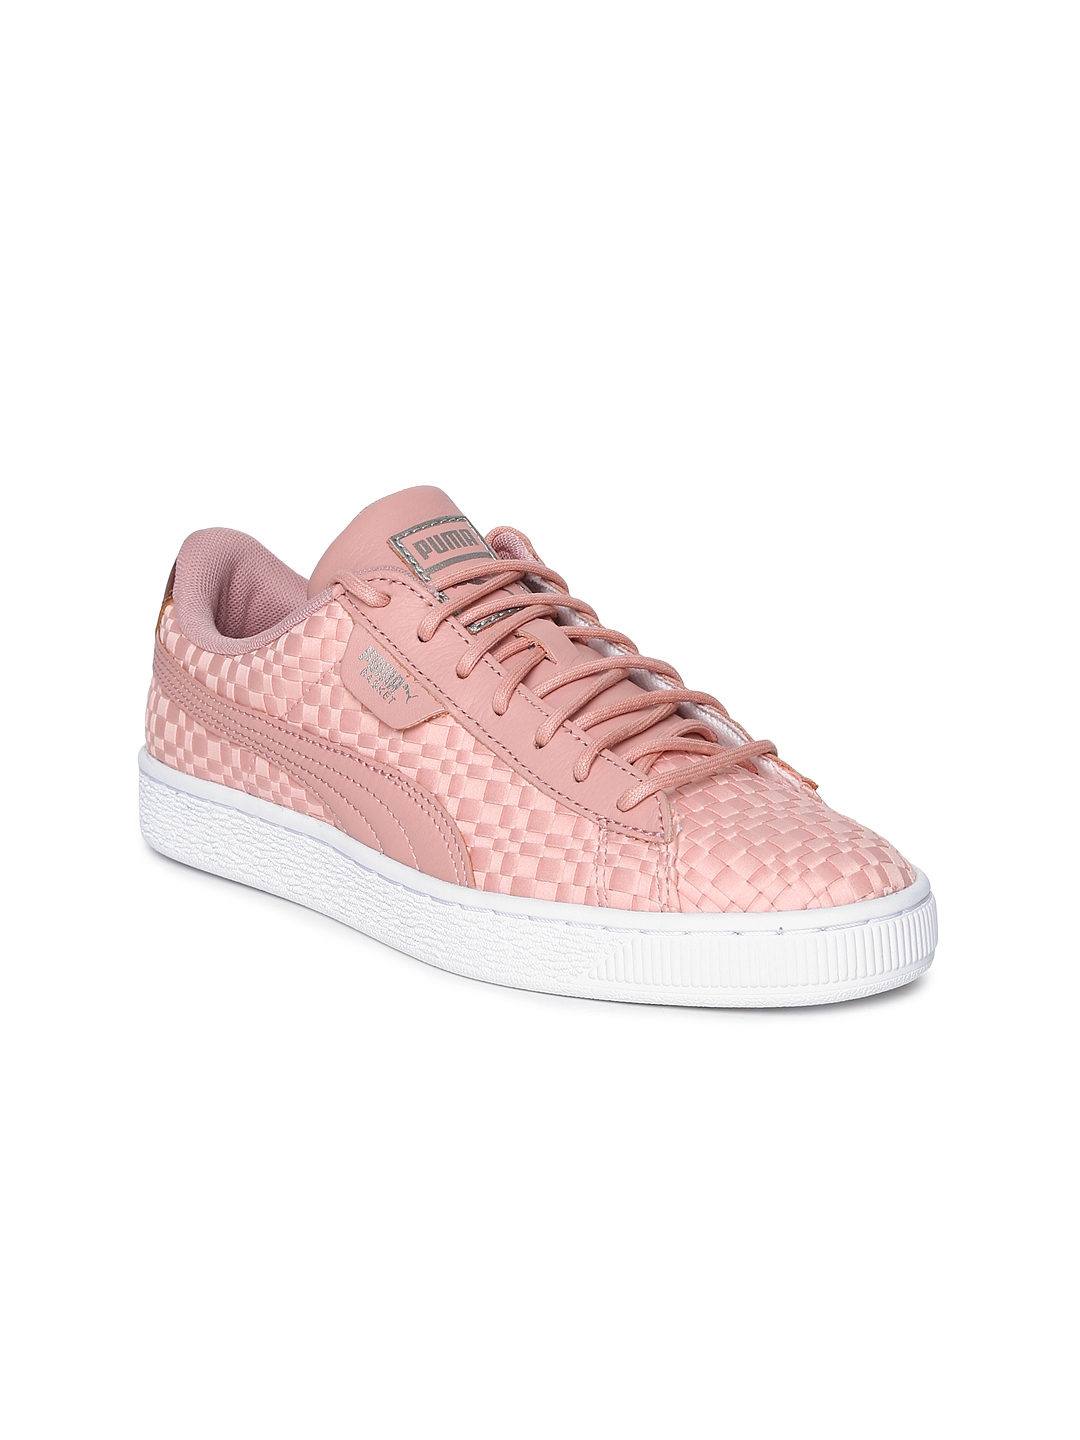 4cd83f5af7d Buy Puma Women Peach Coloured Basket Satin EP Sneakers - Casual ...